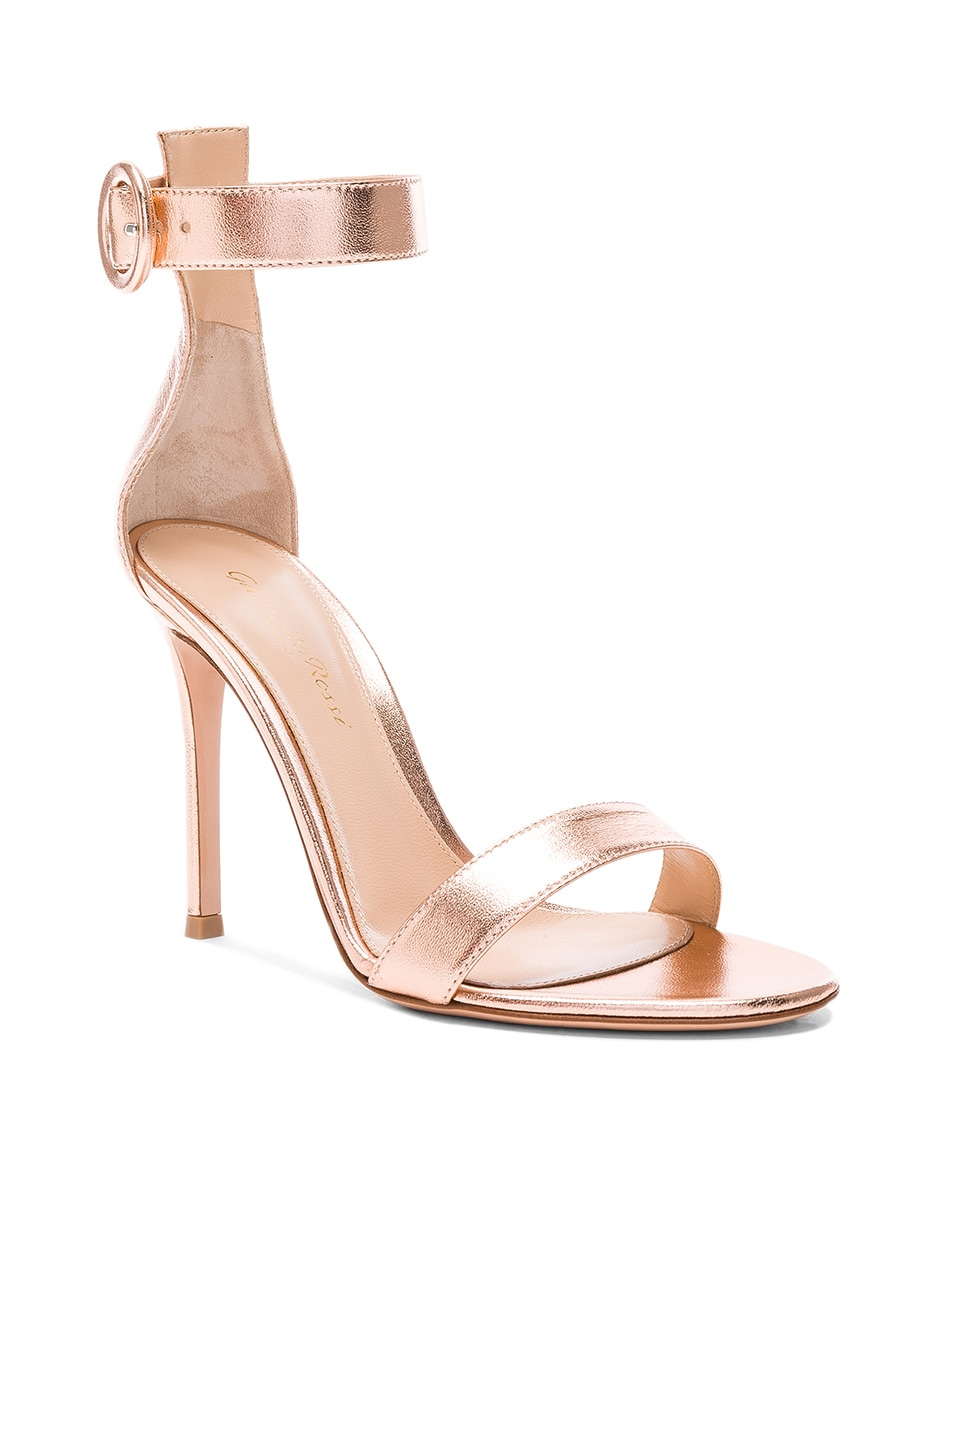 Image 2 of Gianvito Rossi Metallic Leather Ankle Strap Heels in Praline